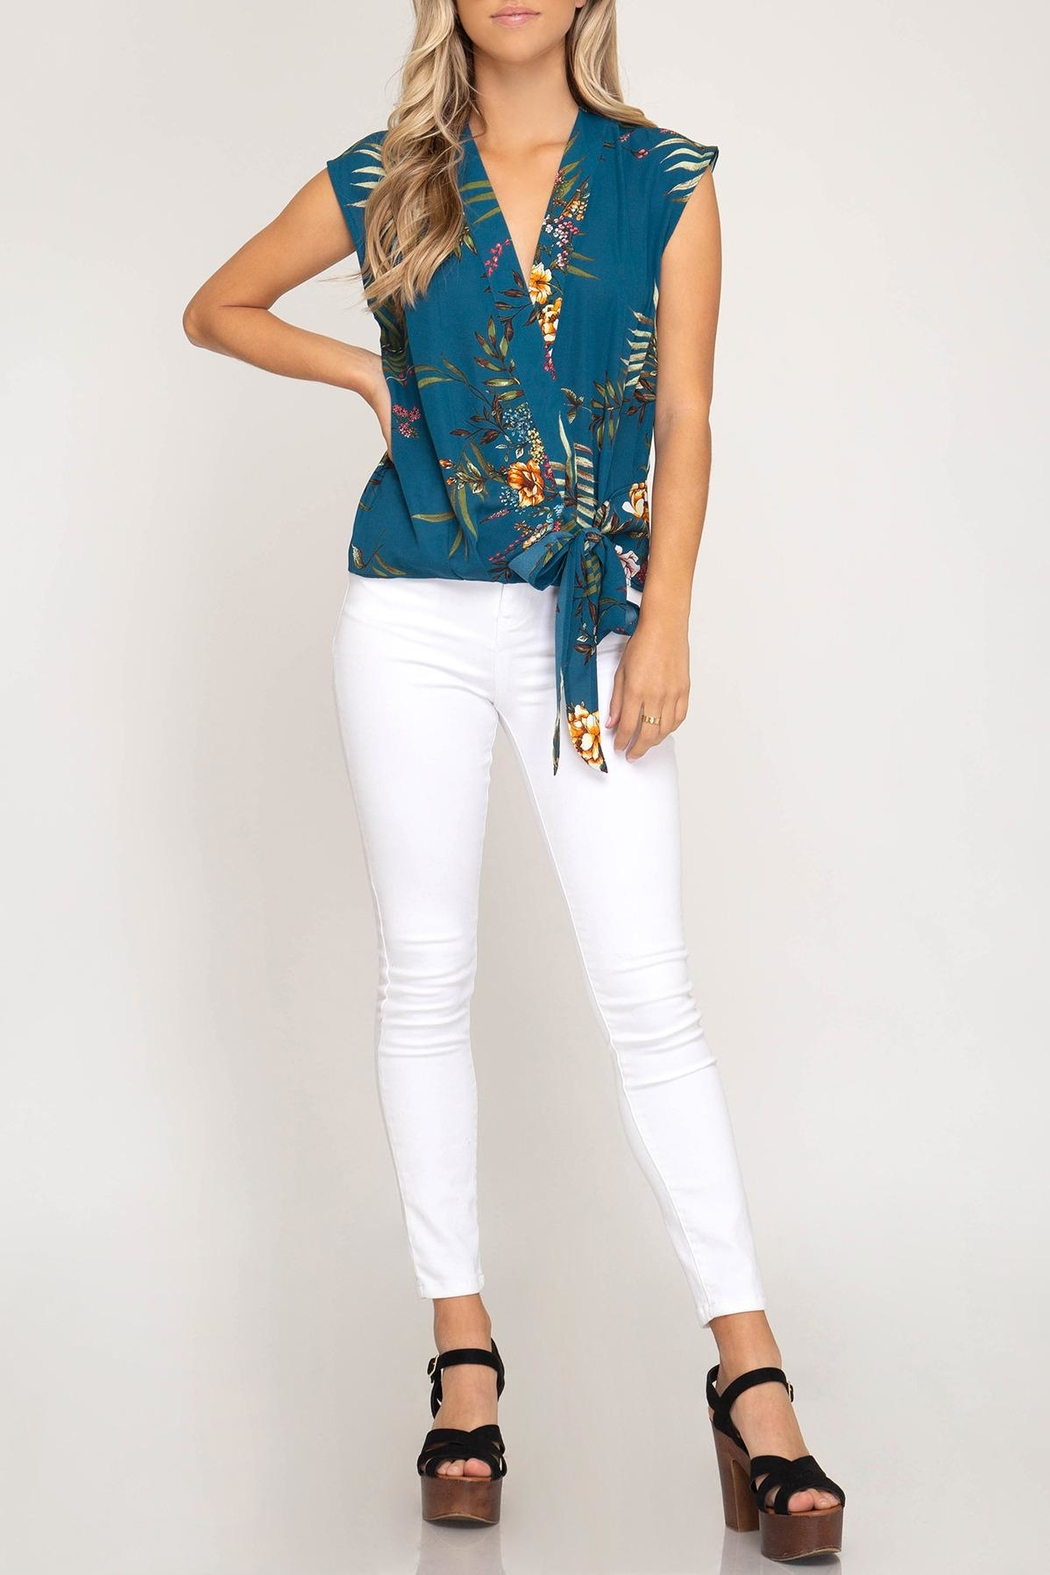 She + Sky Floral Side-Tie Top - Front Full Image